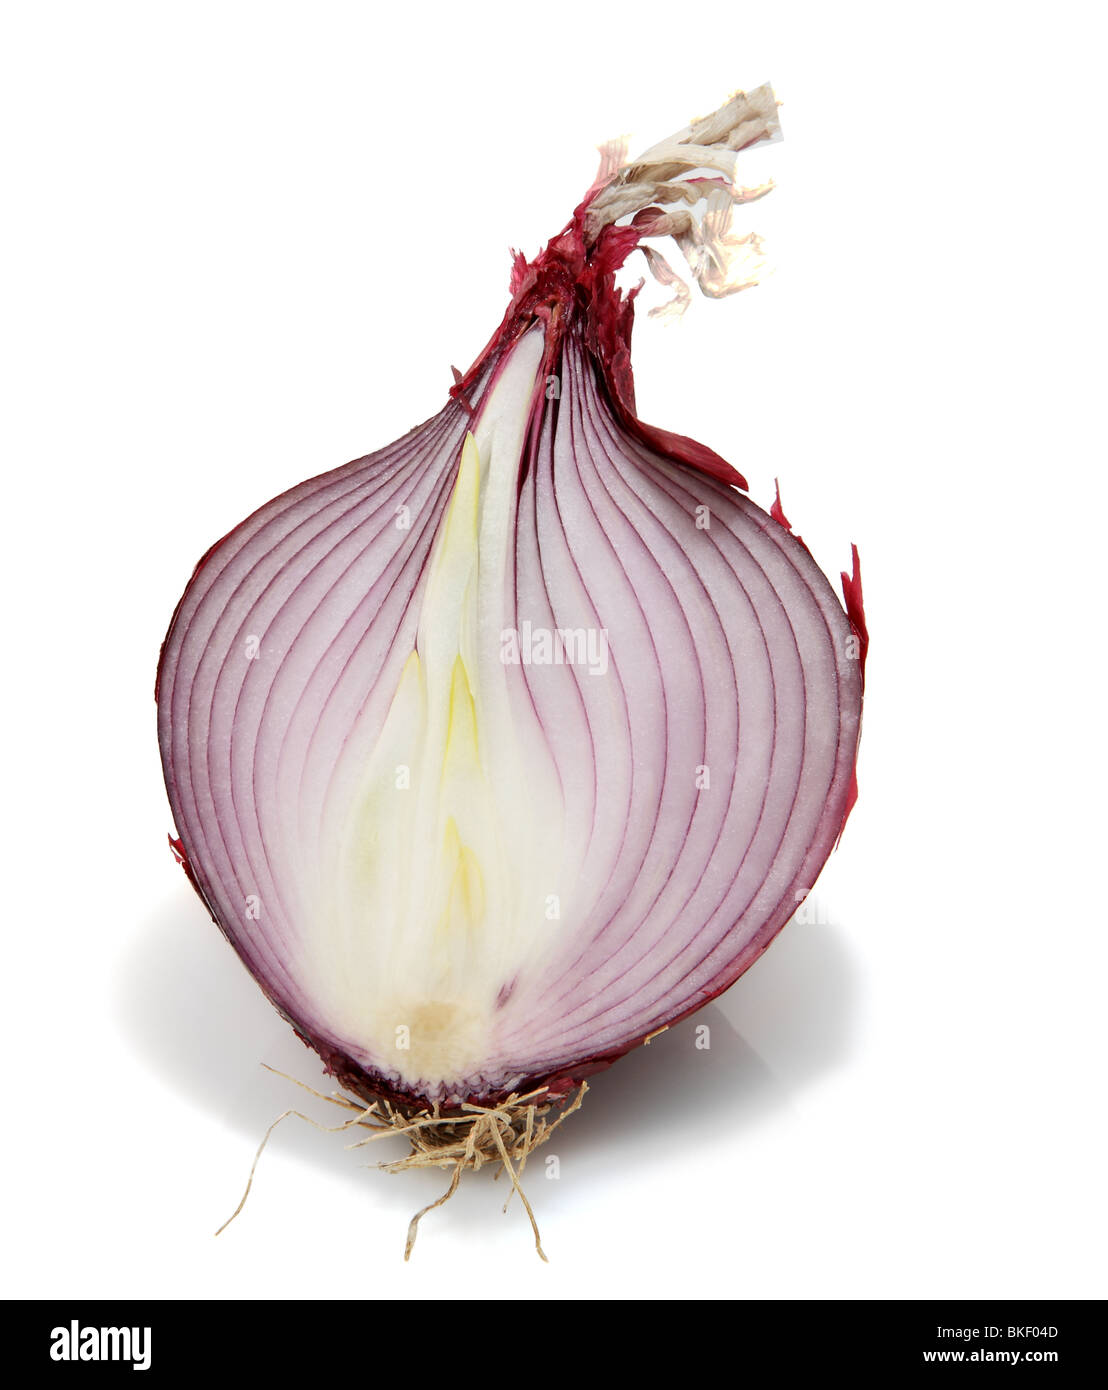 Red onion cut in half - Stock Image